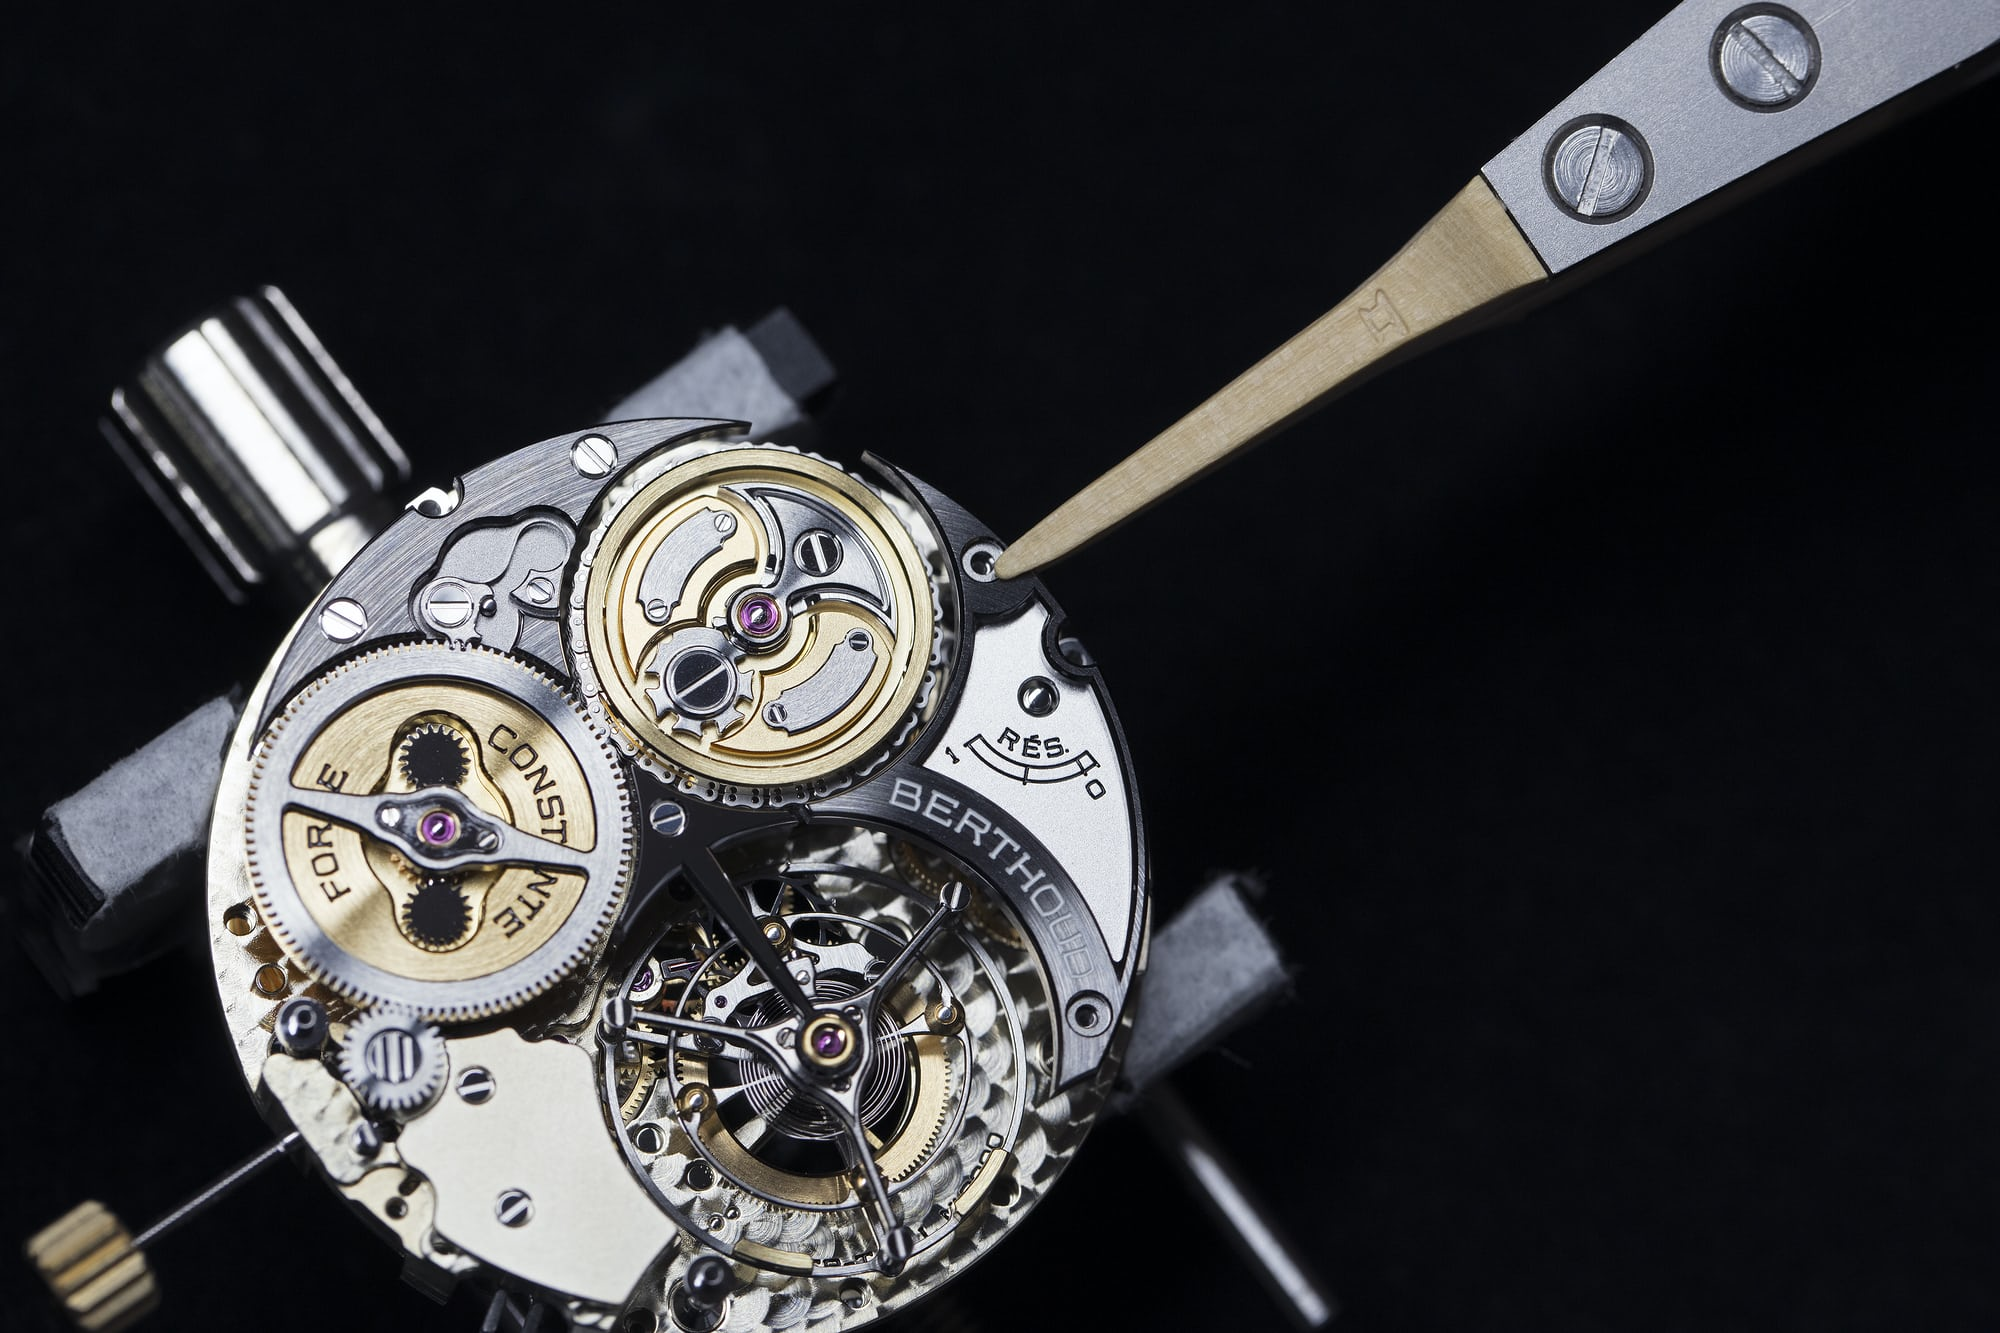 <p>Assembled movement, with hanging/suspended fusee cone and mainspring barrel.</p>